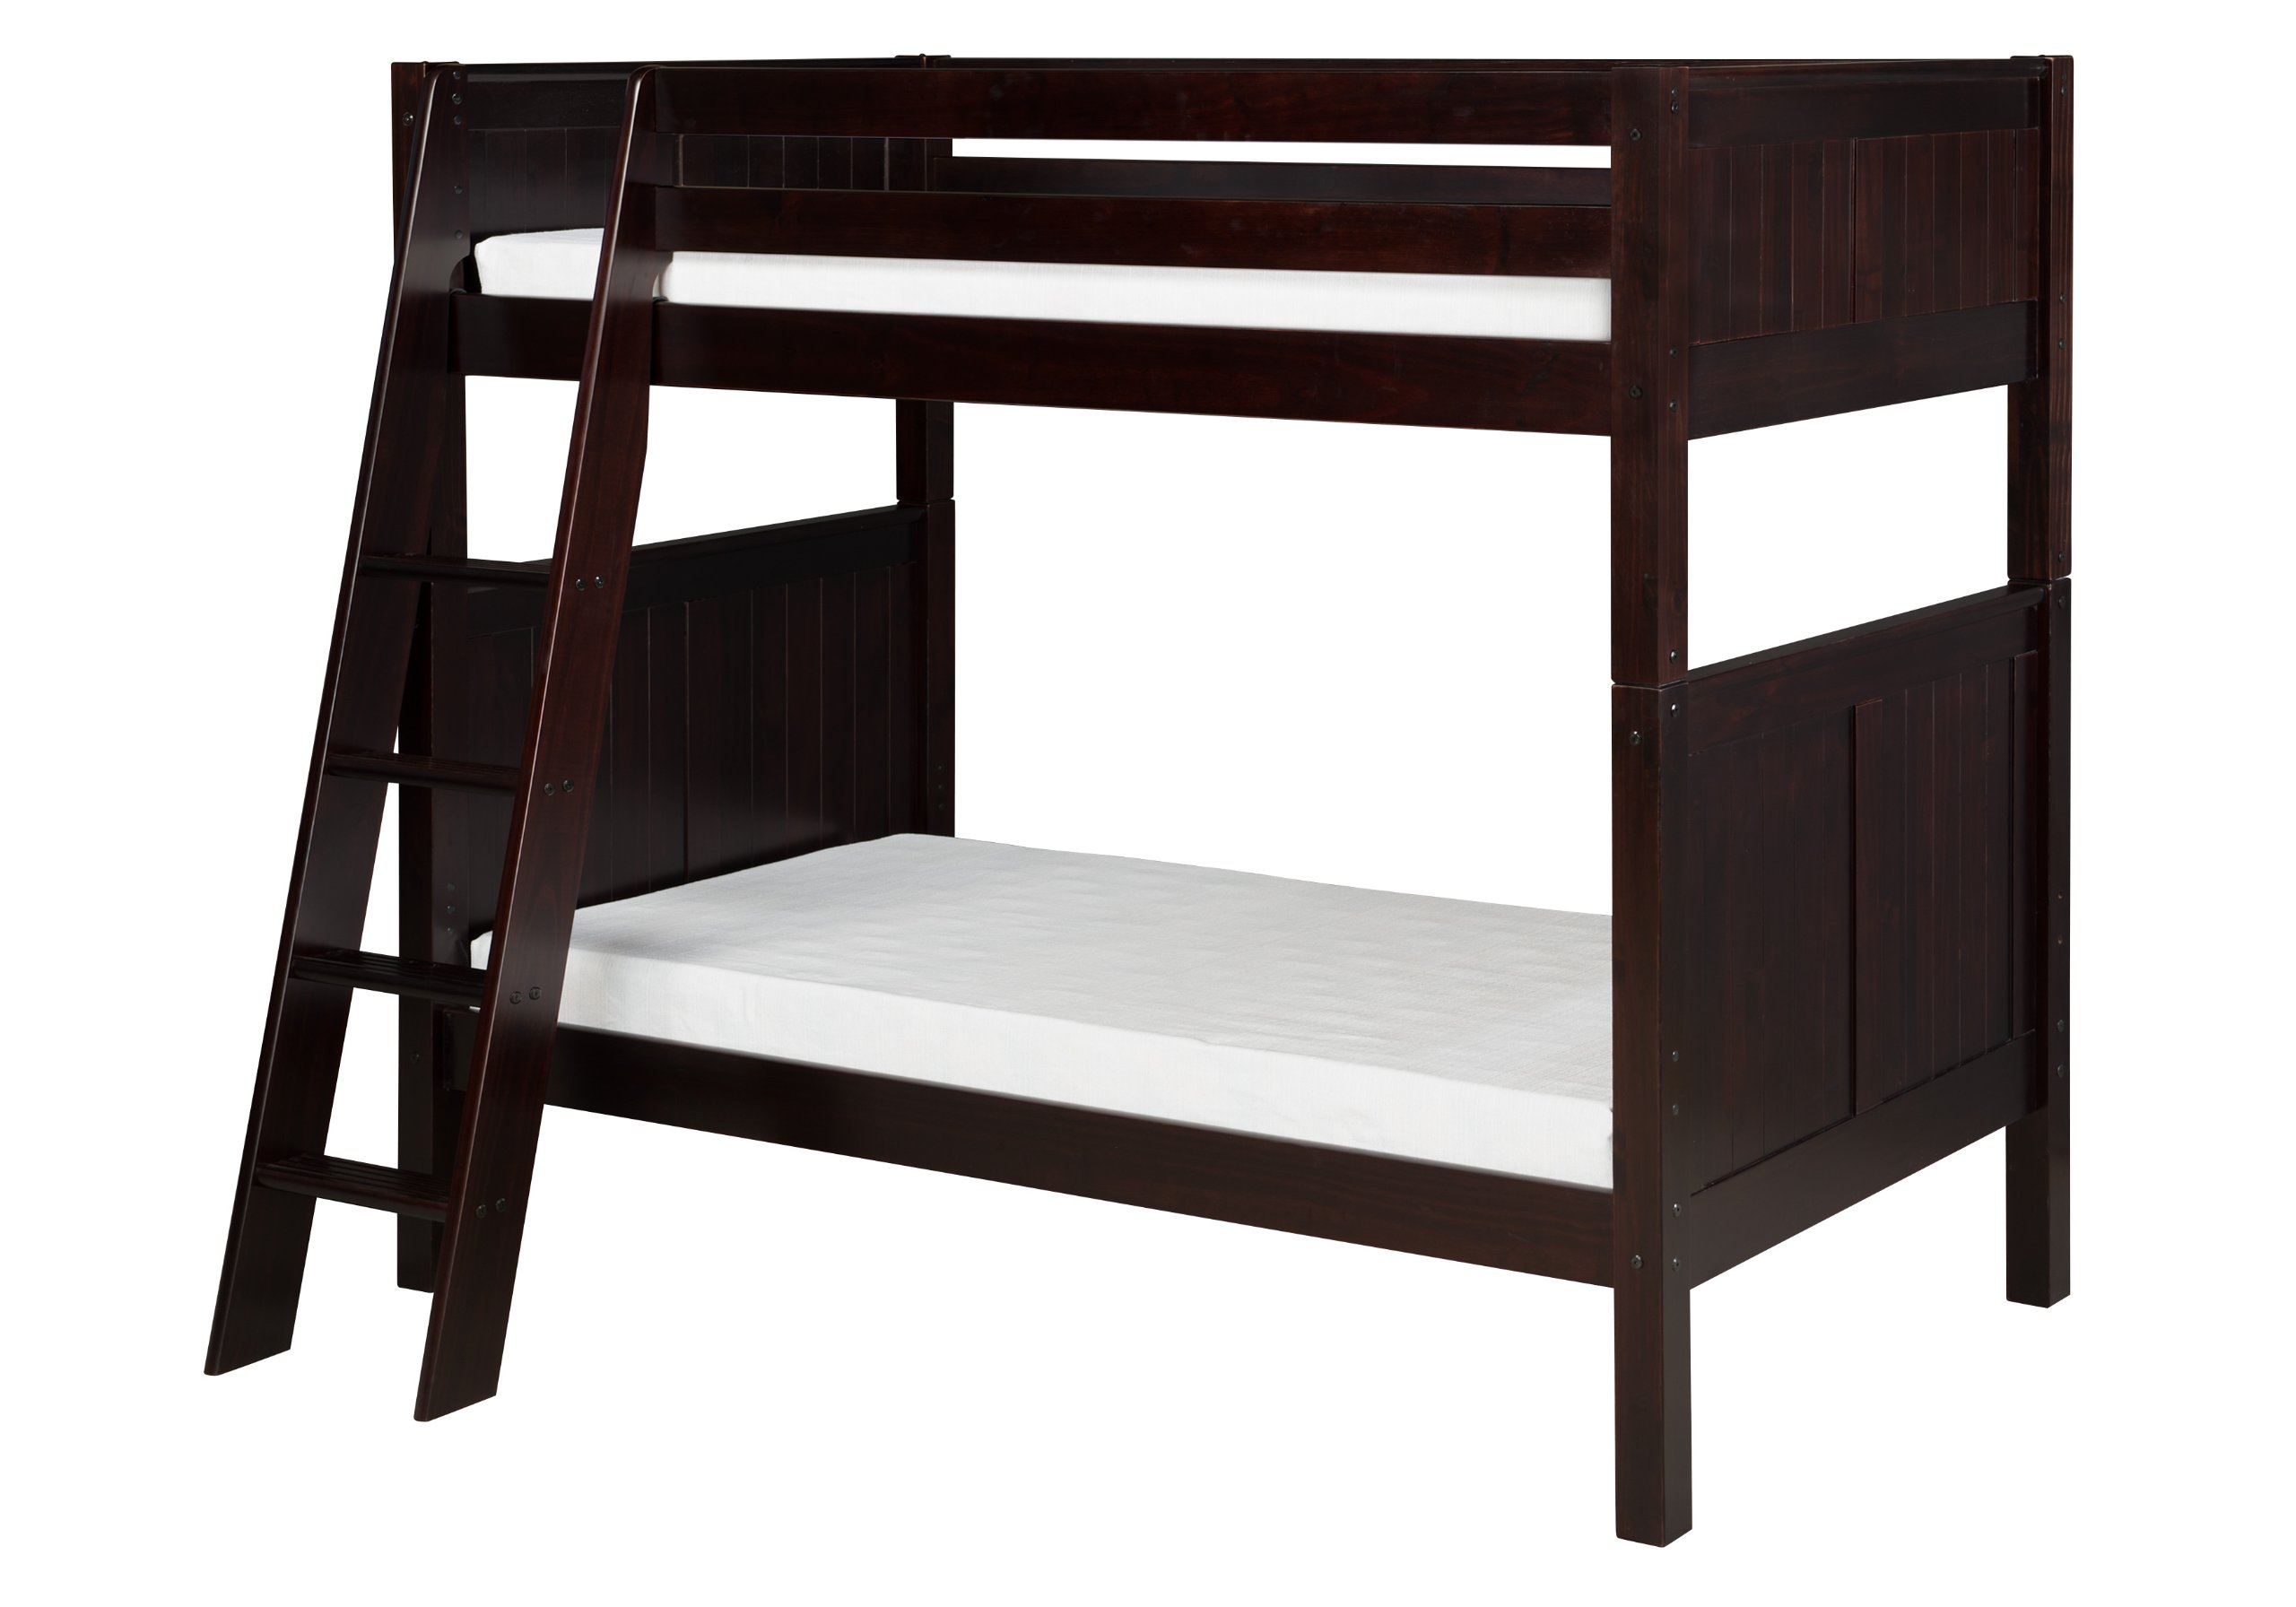 Camaflexi Panel Style Solid Wood Low Bunk Bed, Twin-Over-Twin, Side Angled Ladder, Cappuccino